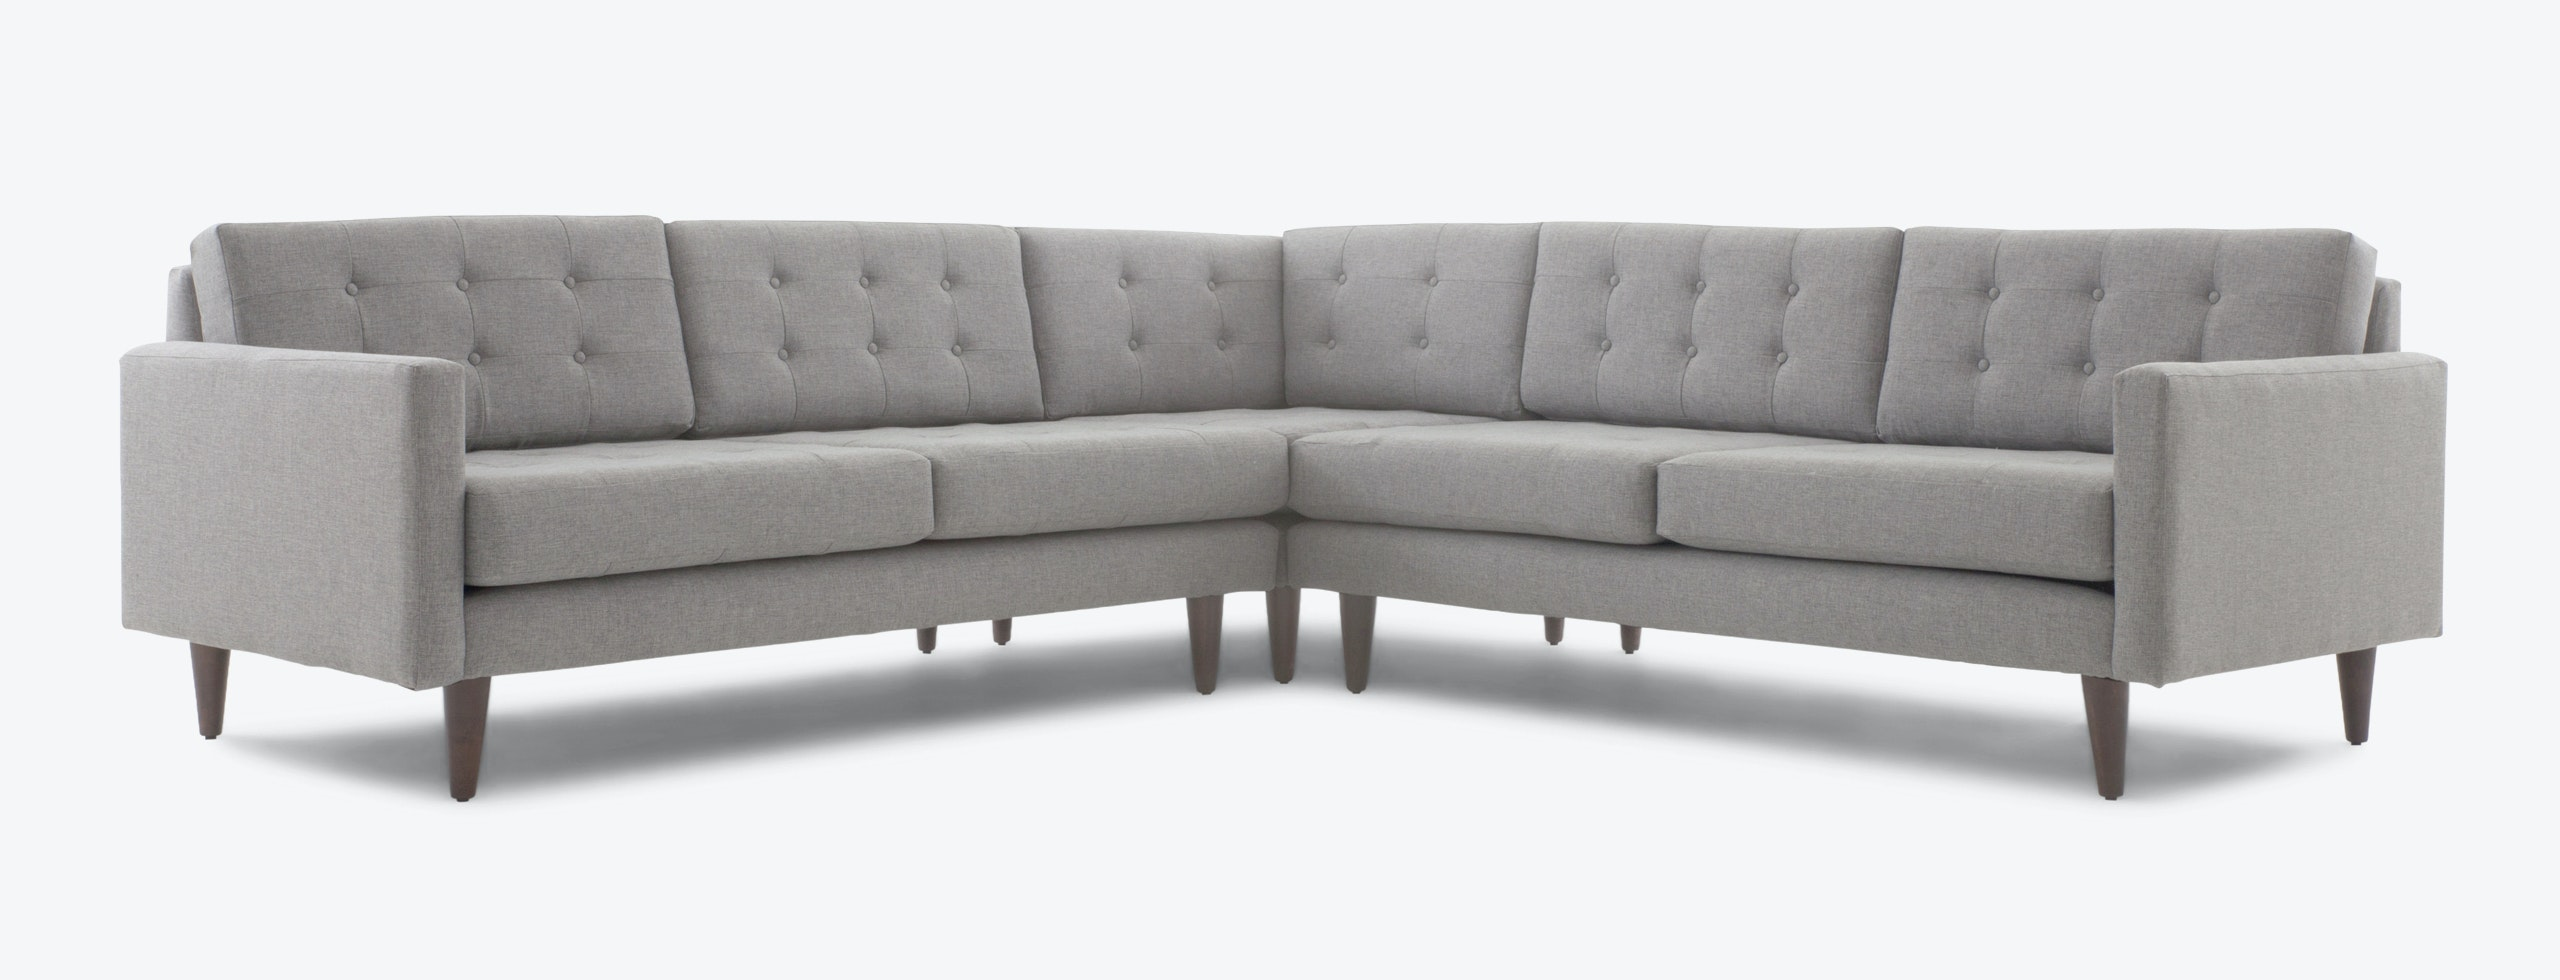 elliot fabric sectional living room furniture collection chair sets eliot corner joybird main gallery image